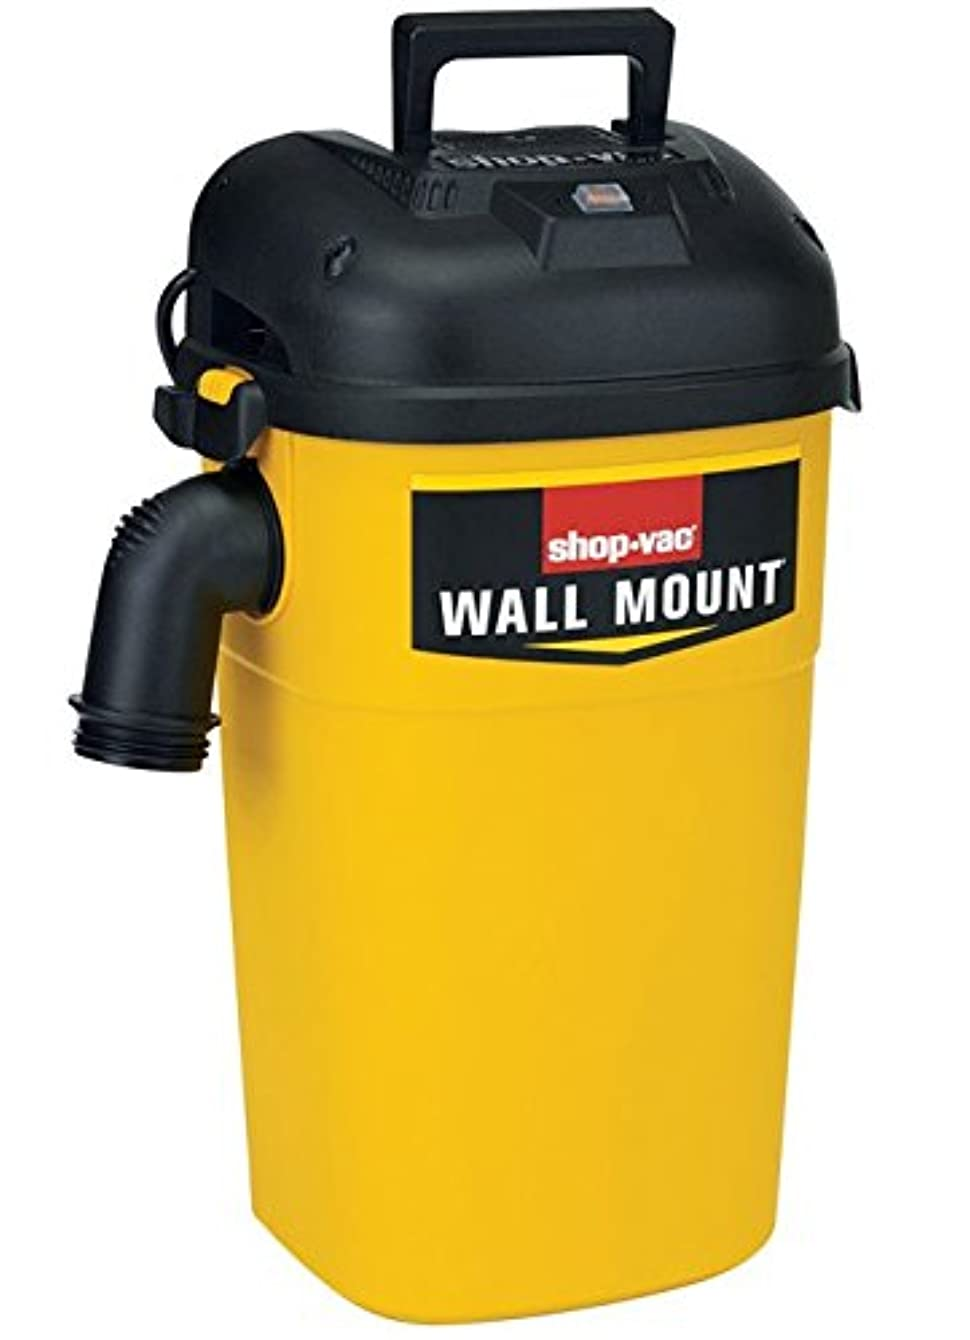 Shop-Vac 3942300 5 gallon 4.0 Peak HP Wall Mount Wet/Dry Vacuum Yellow/Black Hands-Free Vacuum with Accessories, Type AA Cartridge Filter & Type CC Foam Sleeve & Type O Filter Bag